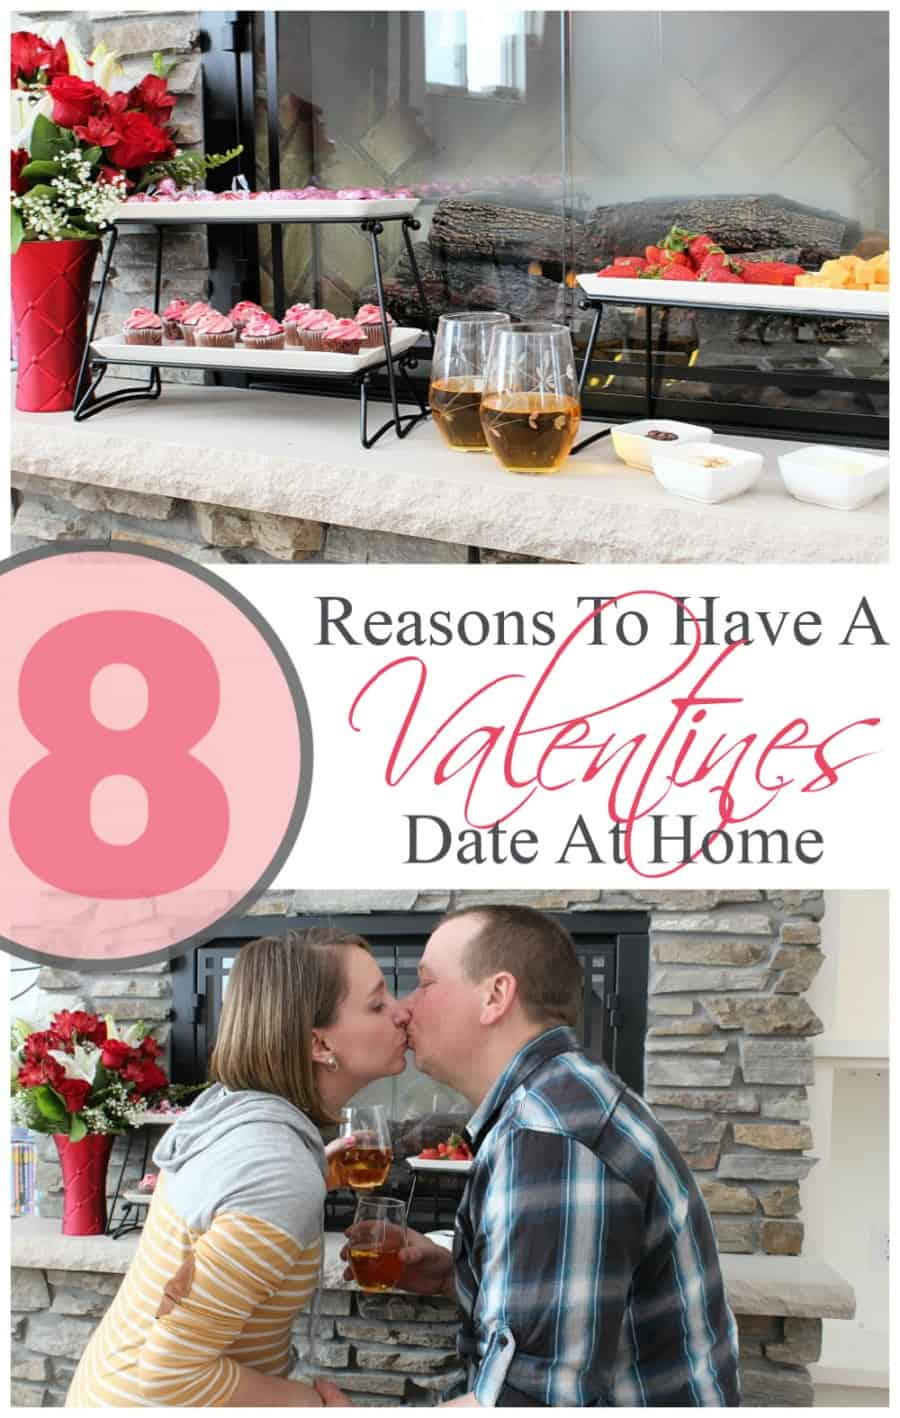 Reasons To Have A Valentines Date At Home